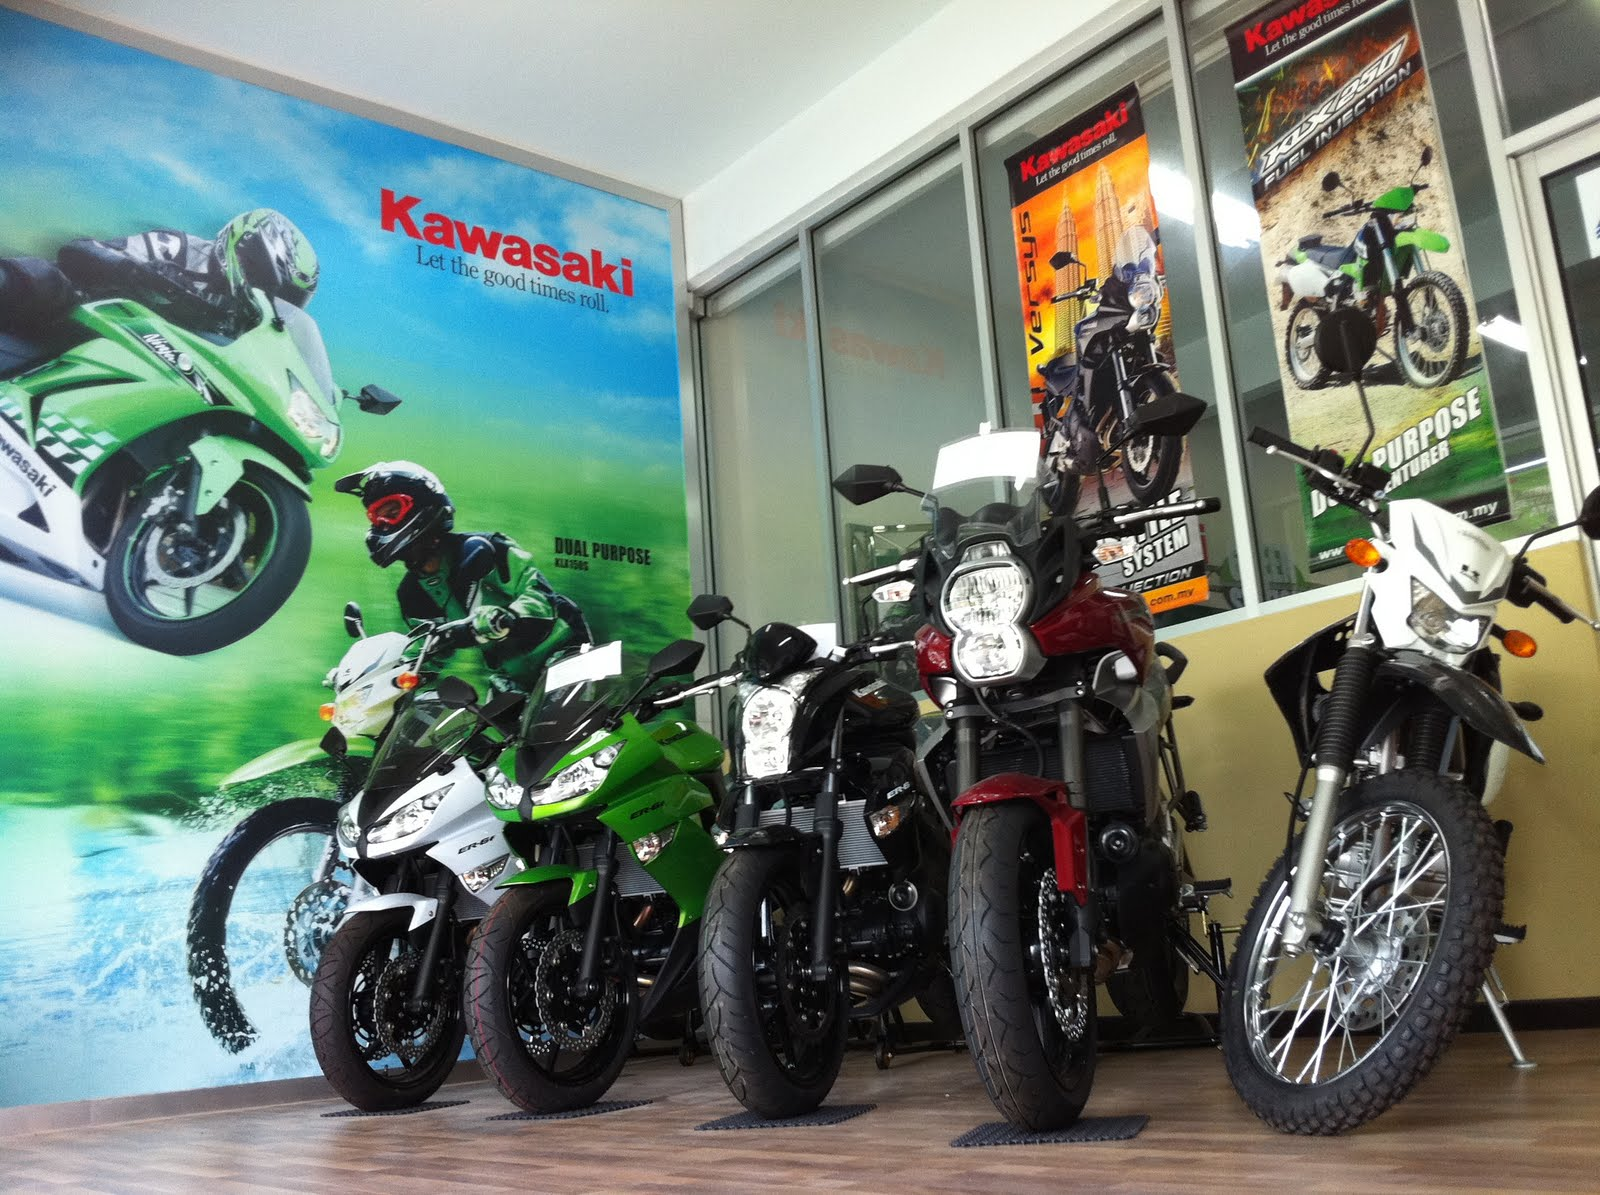 Kawasaki Parts Dealer Near Me